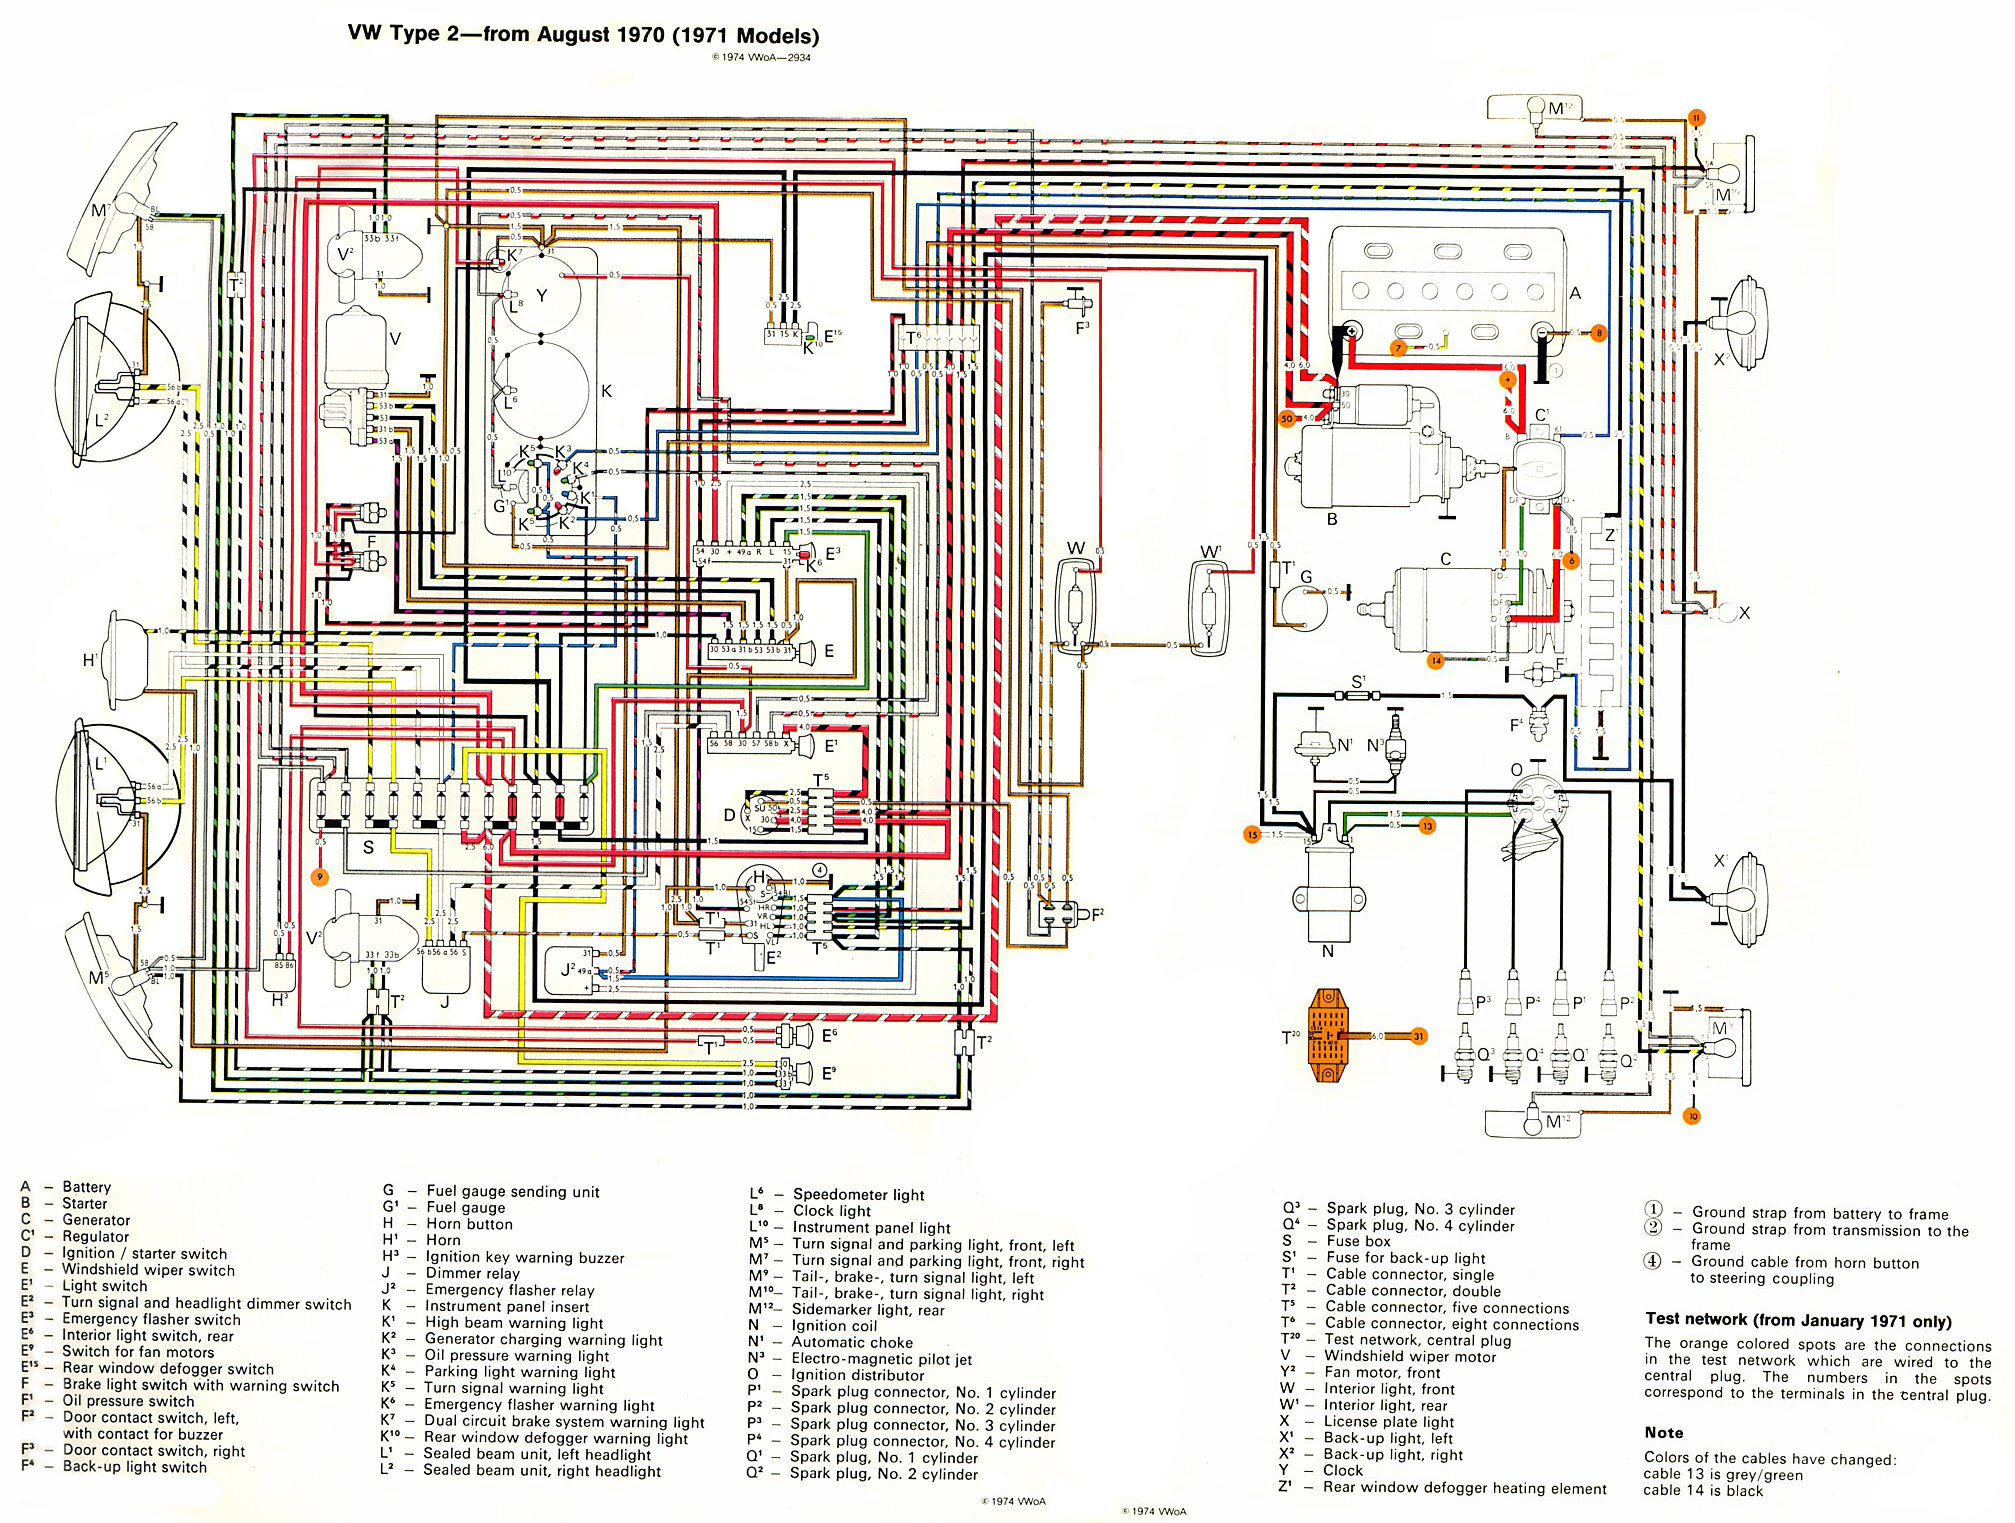 baybus_71_fixed wiring schematic diagram carrier package unit wiring diagram vw wiring diagram symbols at virtualis.co